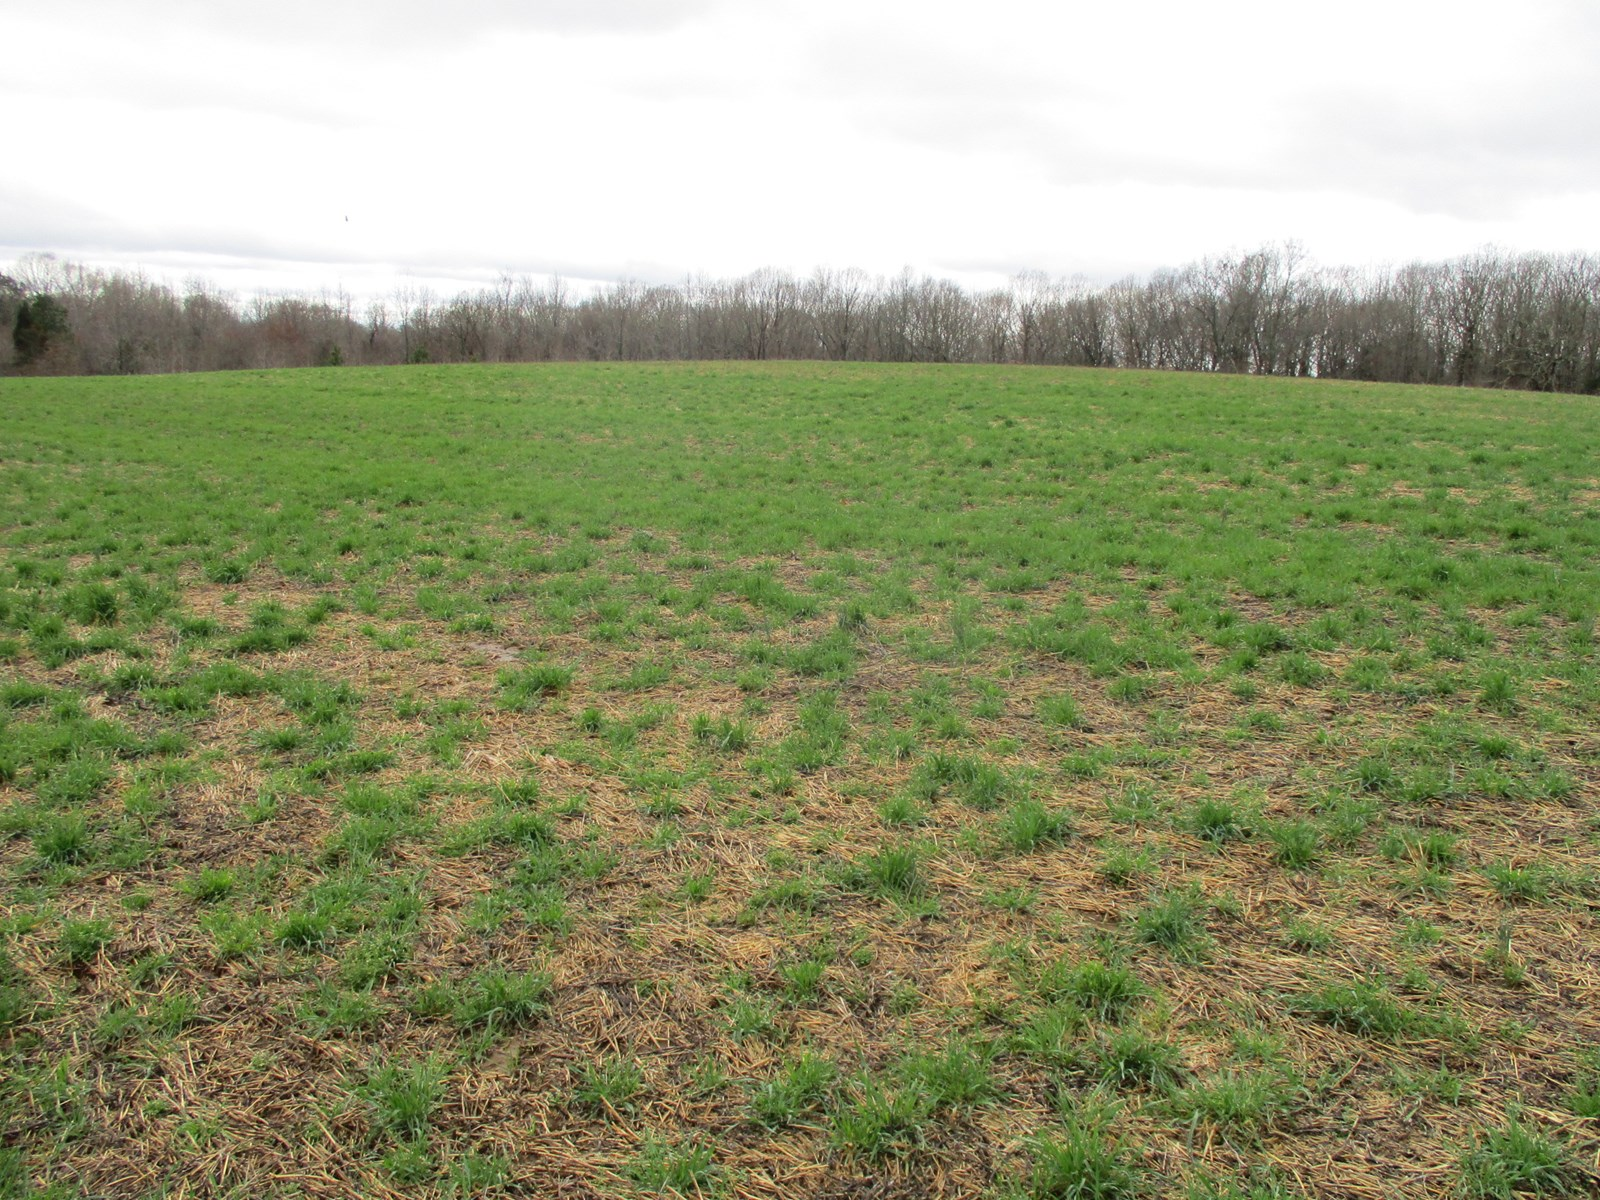 McNairy County Crop & Hunting Land for Sale 108 Acres